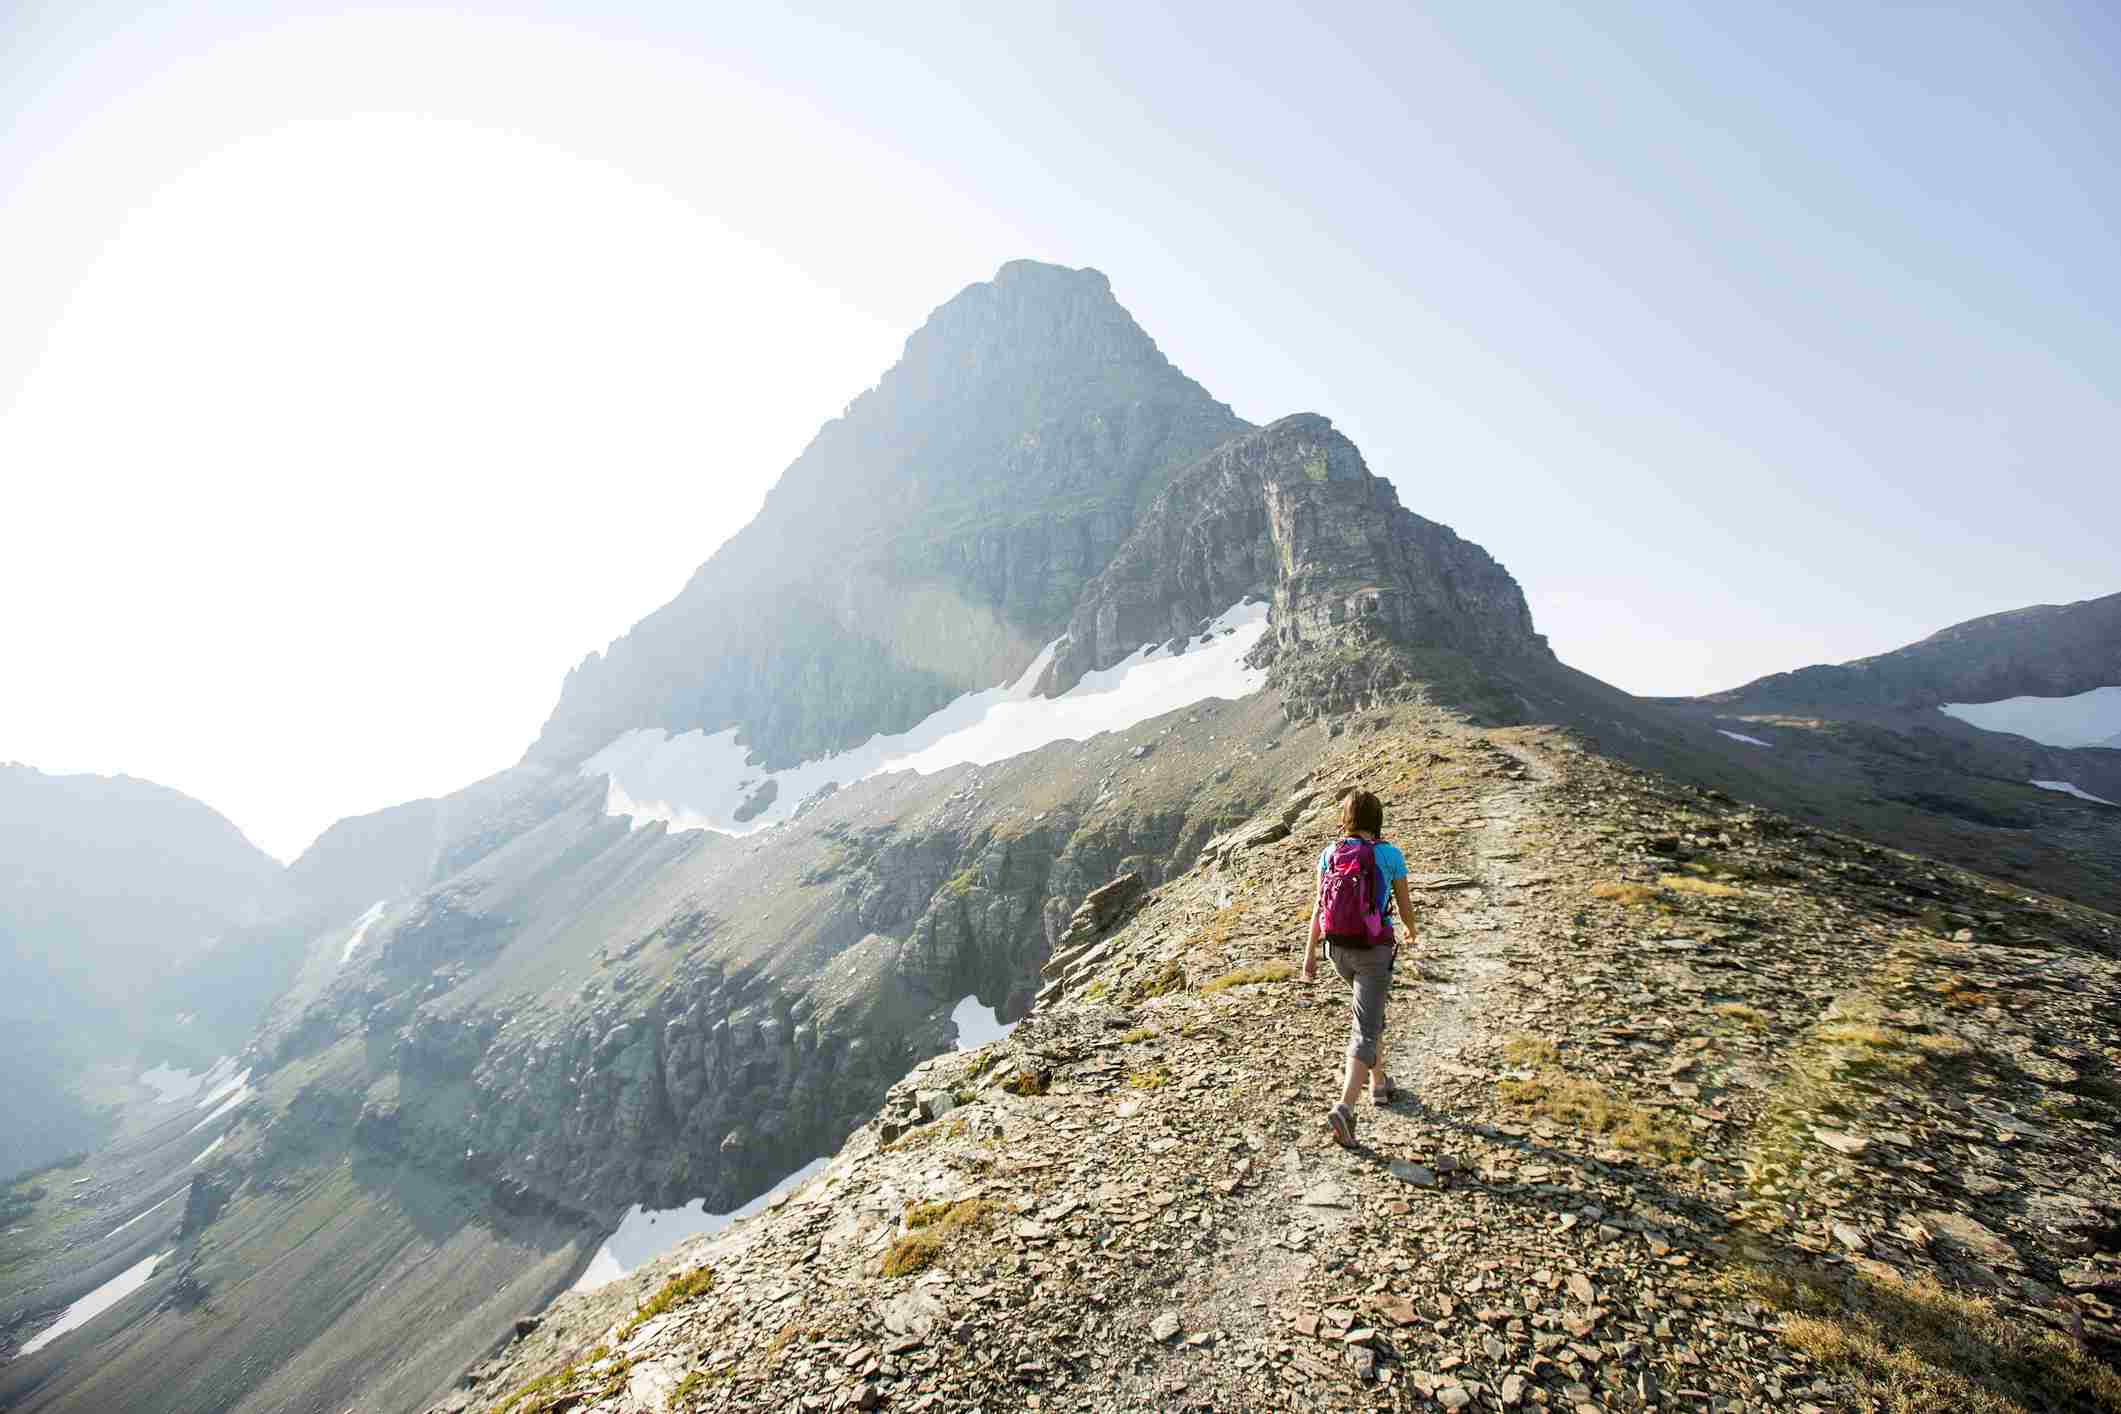 A woman hiking a scenic trail in Glacier National Park.